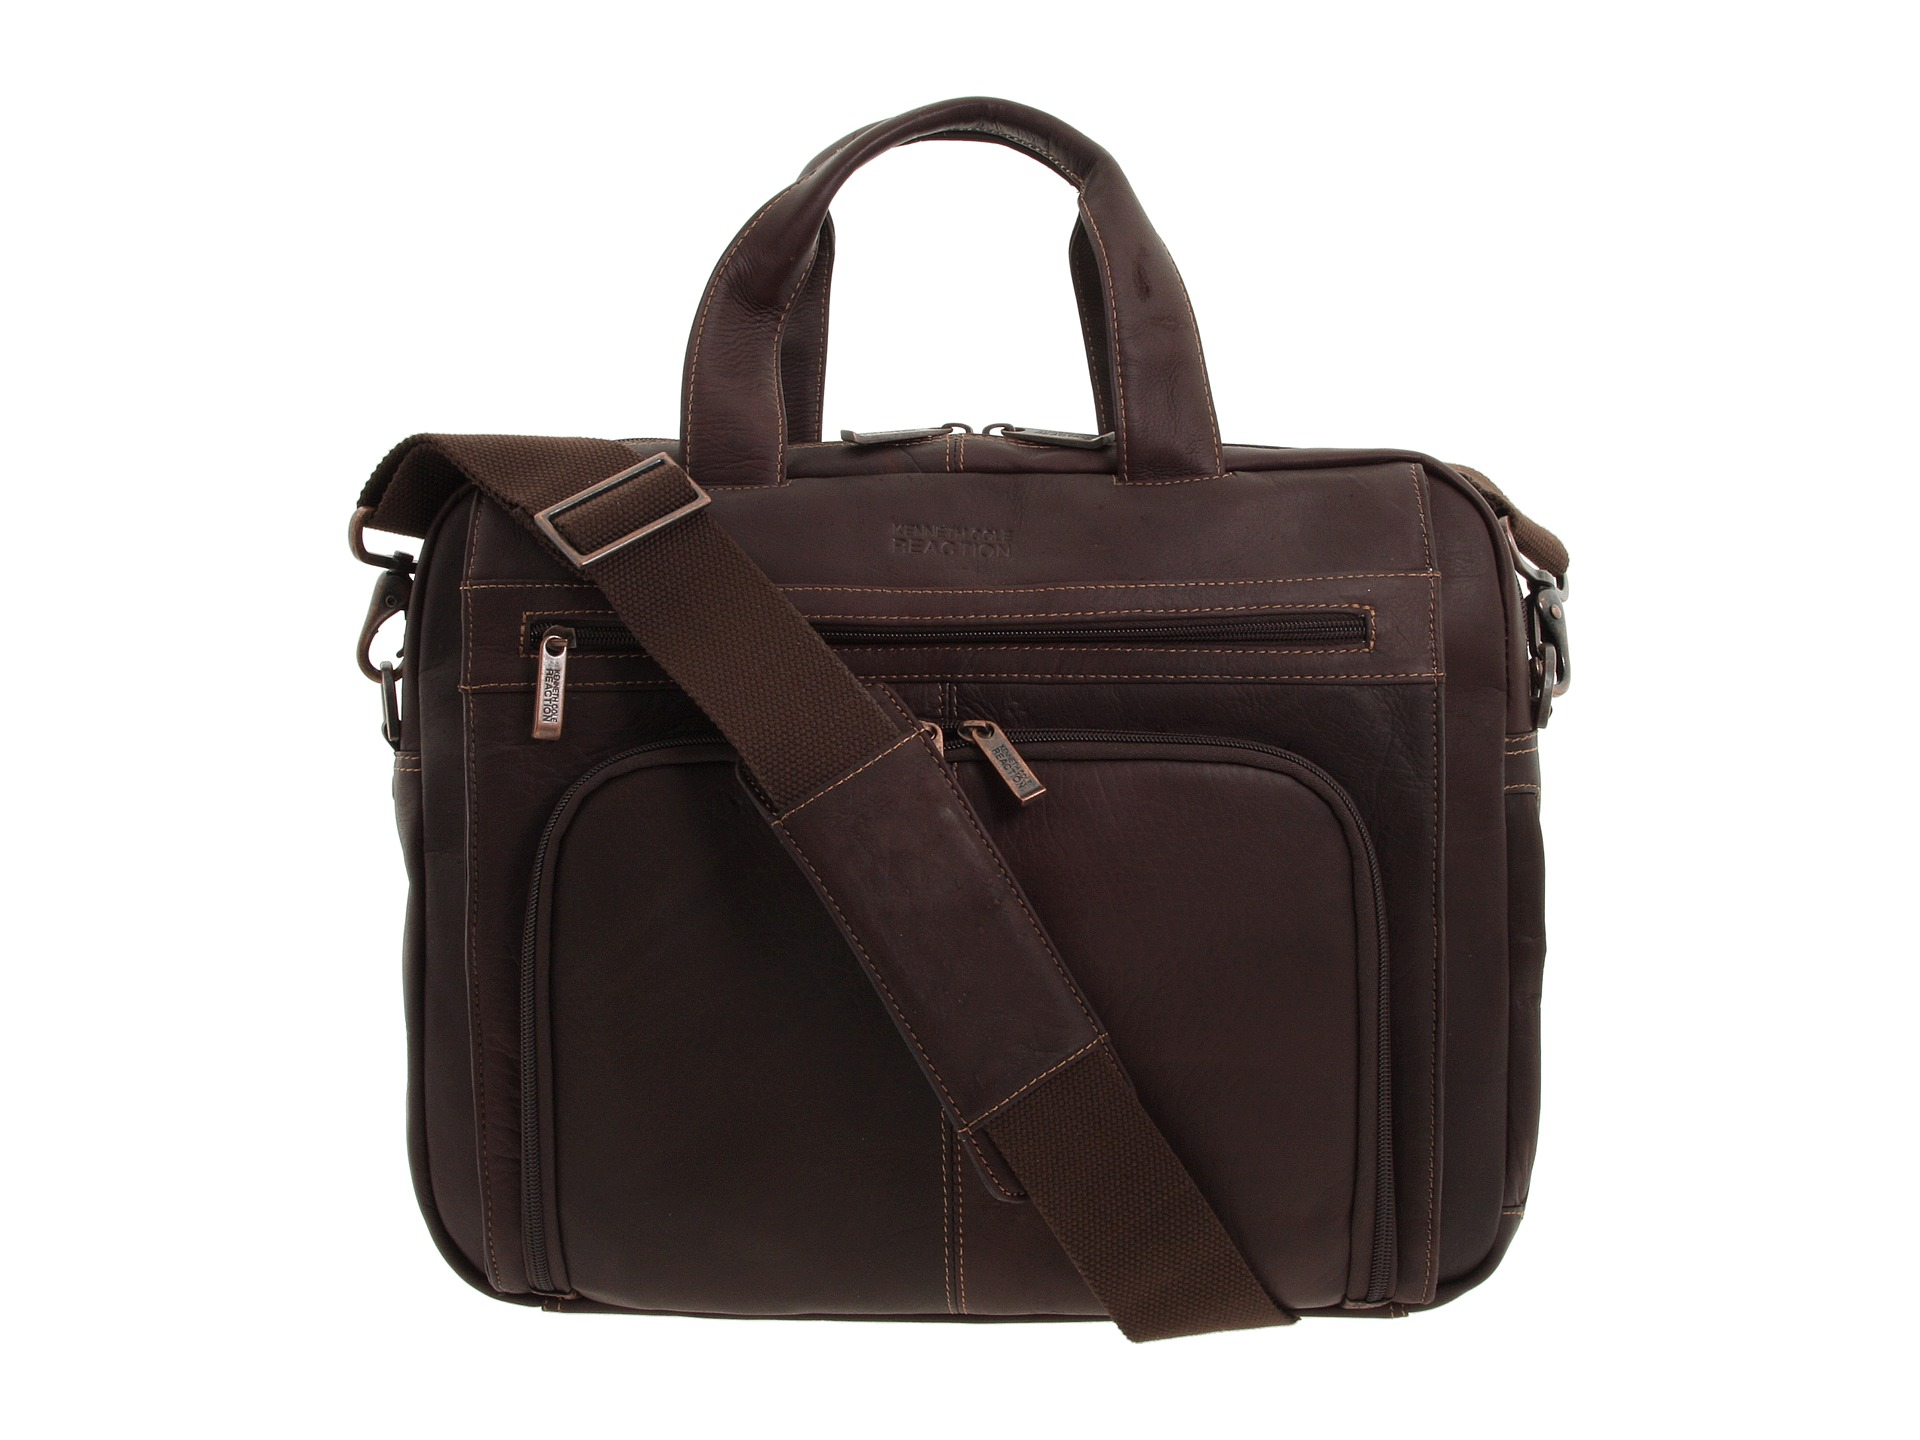 d2dda8005564 Kenneth Cole Reaction Out of the Bag 5 to 6 1/2 Double Gusset Expandable  Top Zip Portfolio Computer Case Dark Brown Full Grain Leather